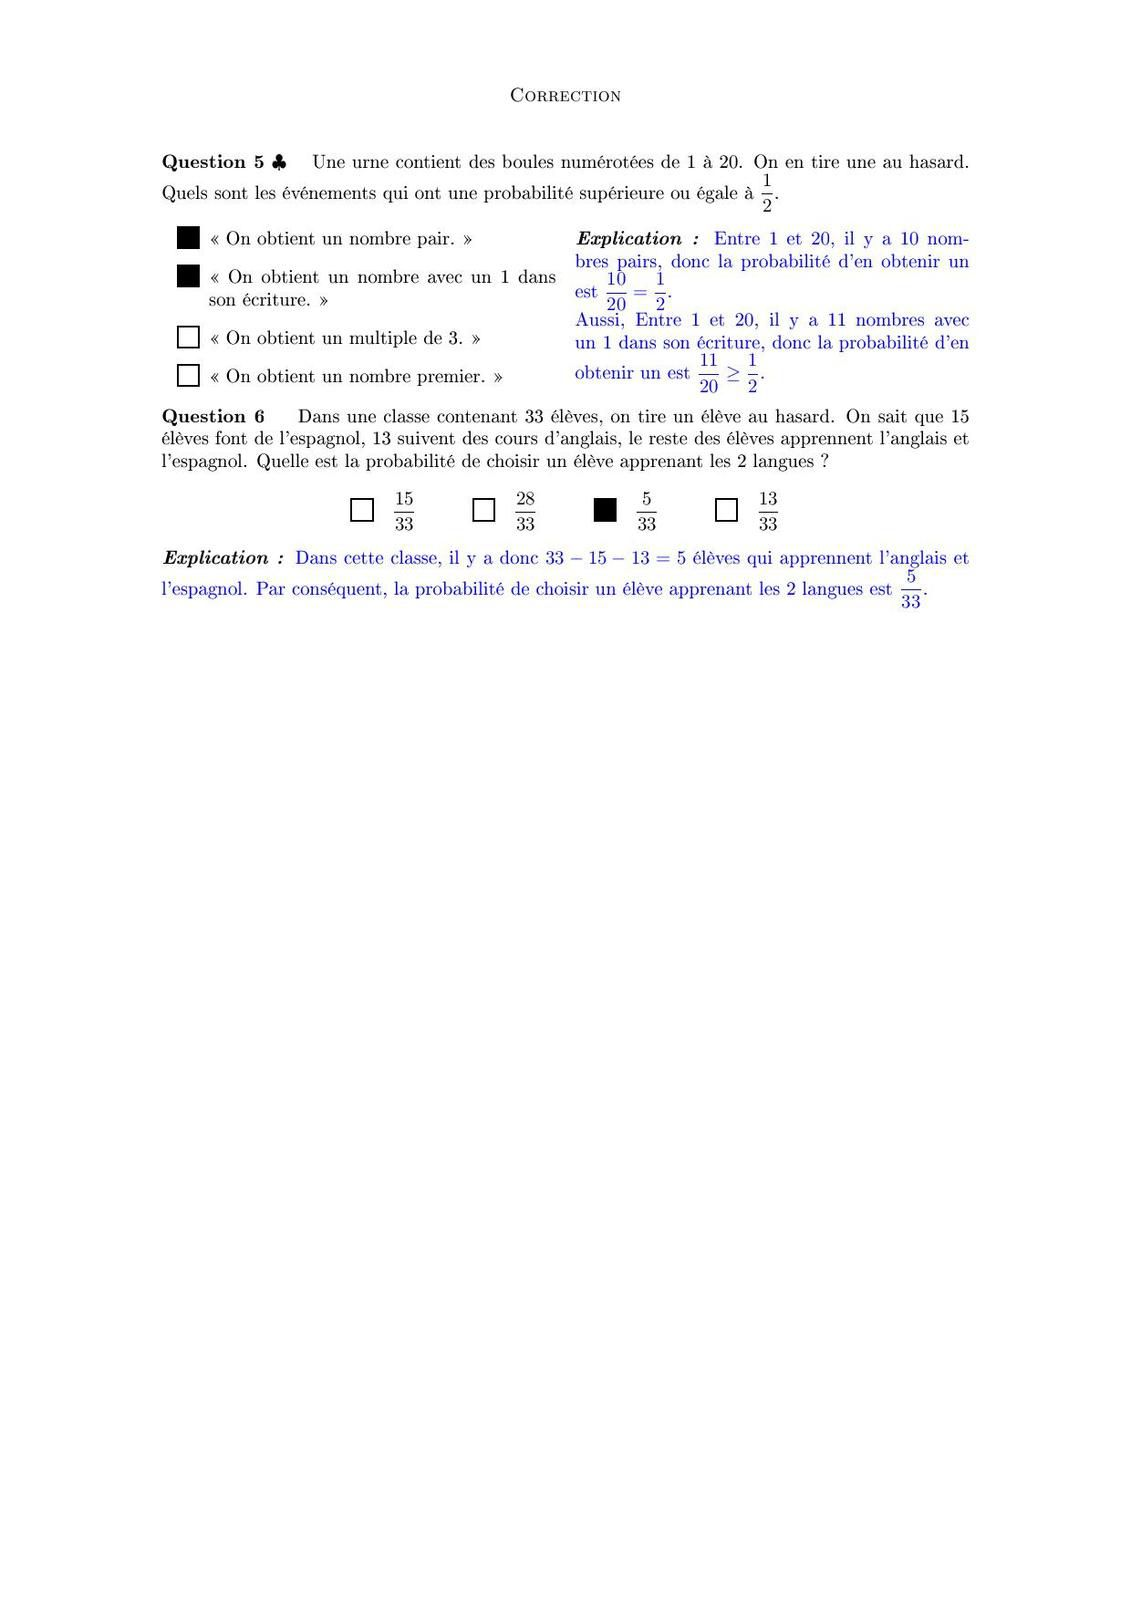 Supplice n°17 - Correction Supplice n°17